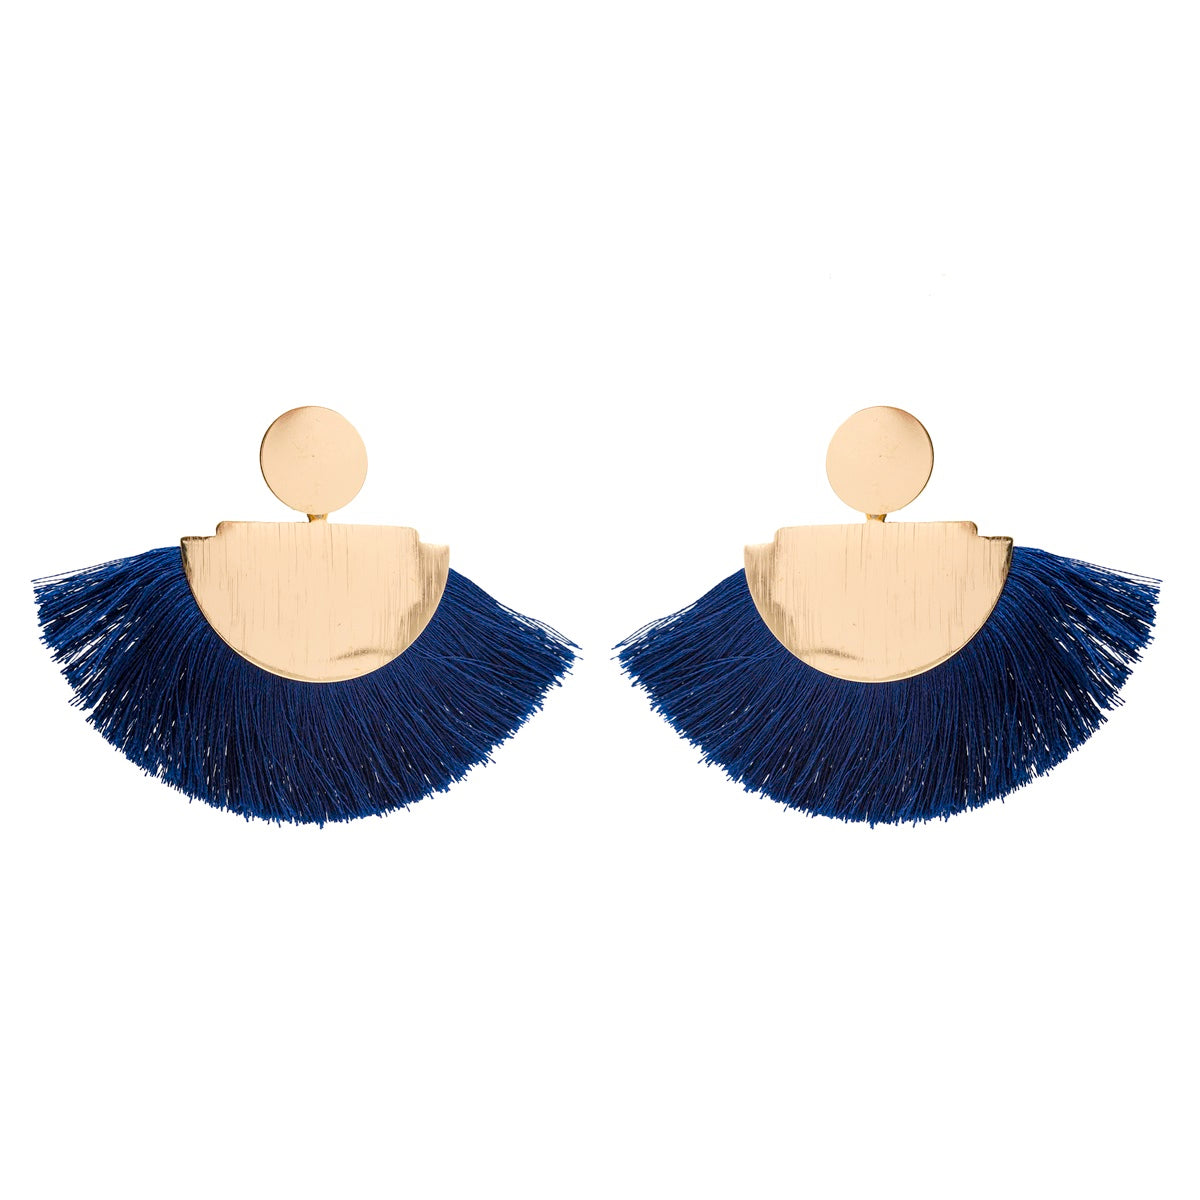 Exquisite Gold-tone Soft Tassel - Kiyara